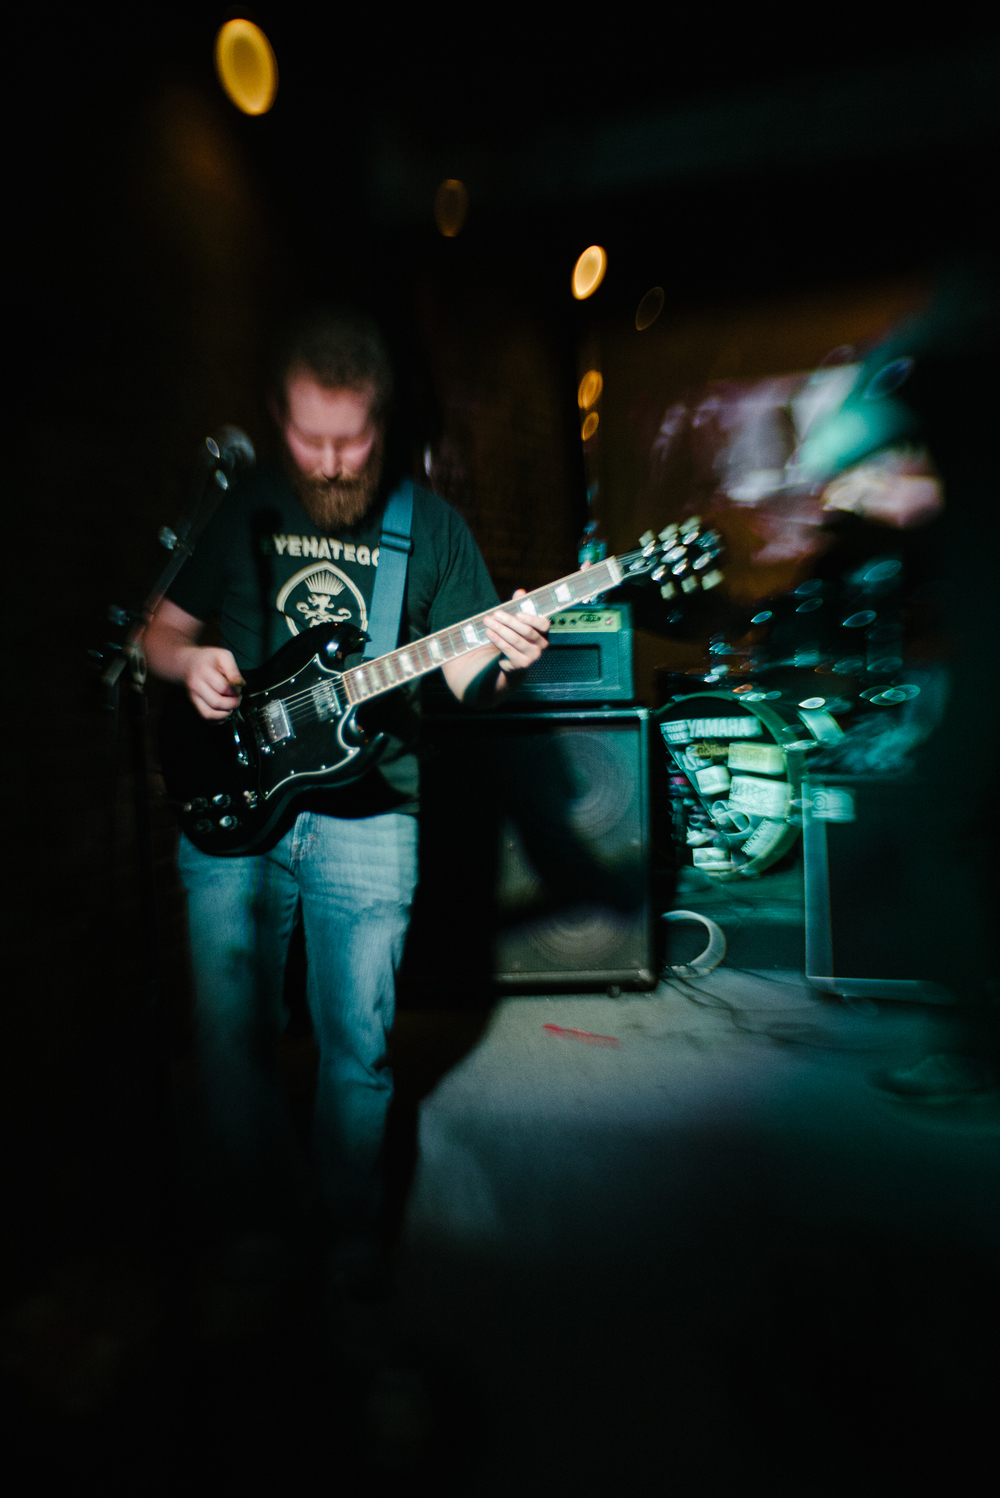 hail-eris-lensbaby-guitar-band-editorial-photography-nyc-leftfield.jpg